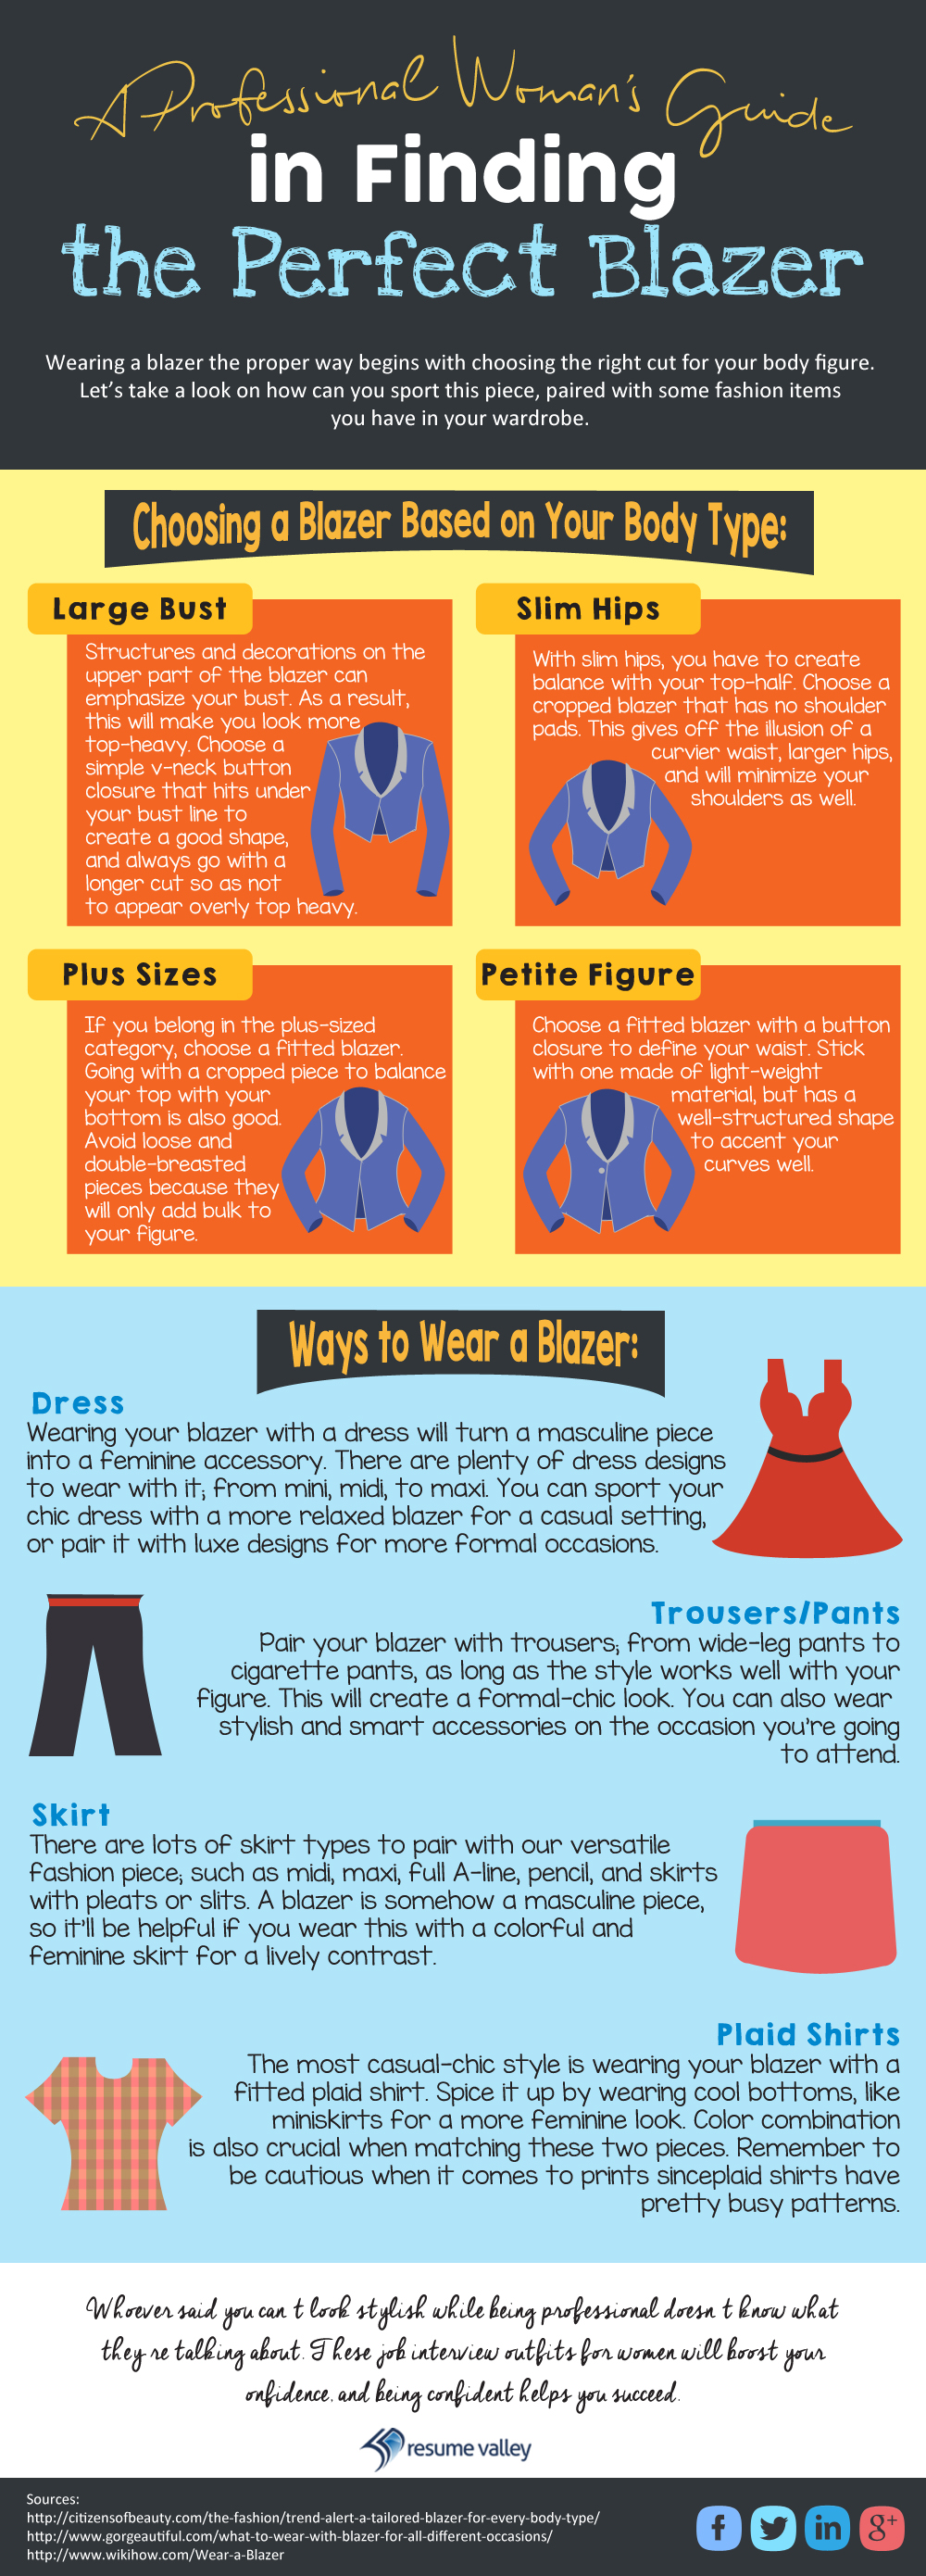 A Professional Woman_s Guide in Finding the Perfect Blazer